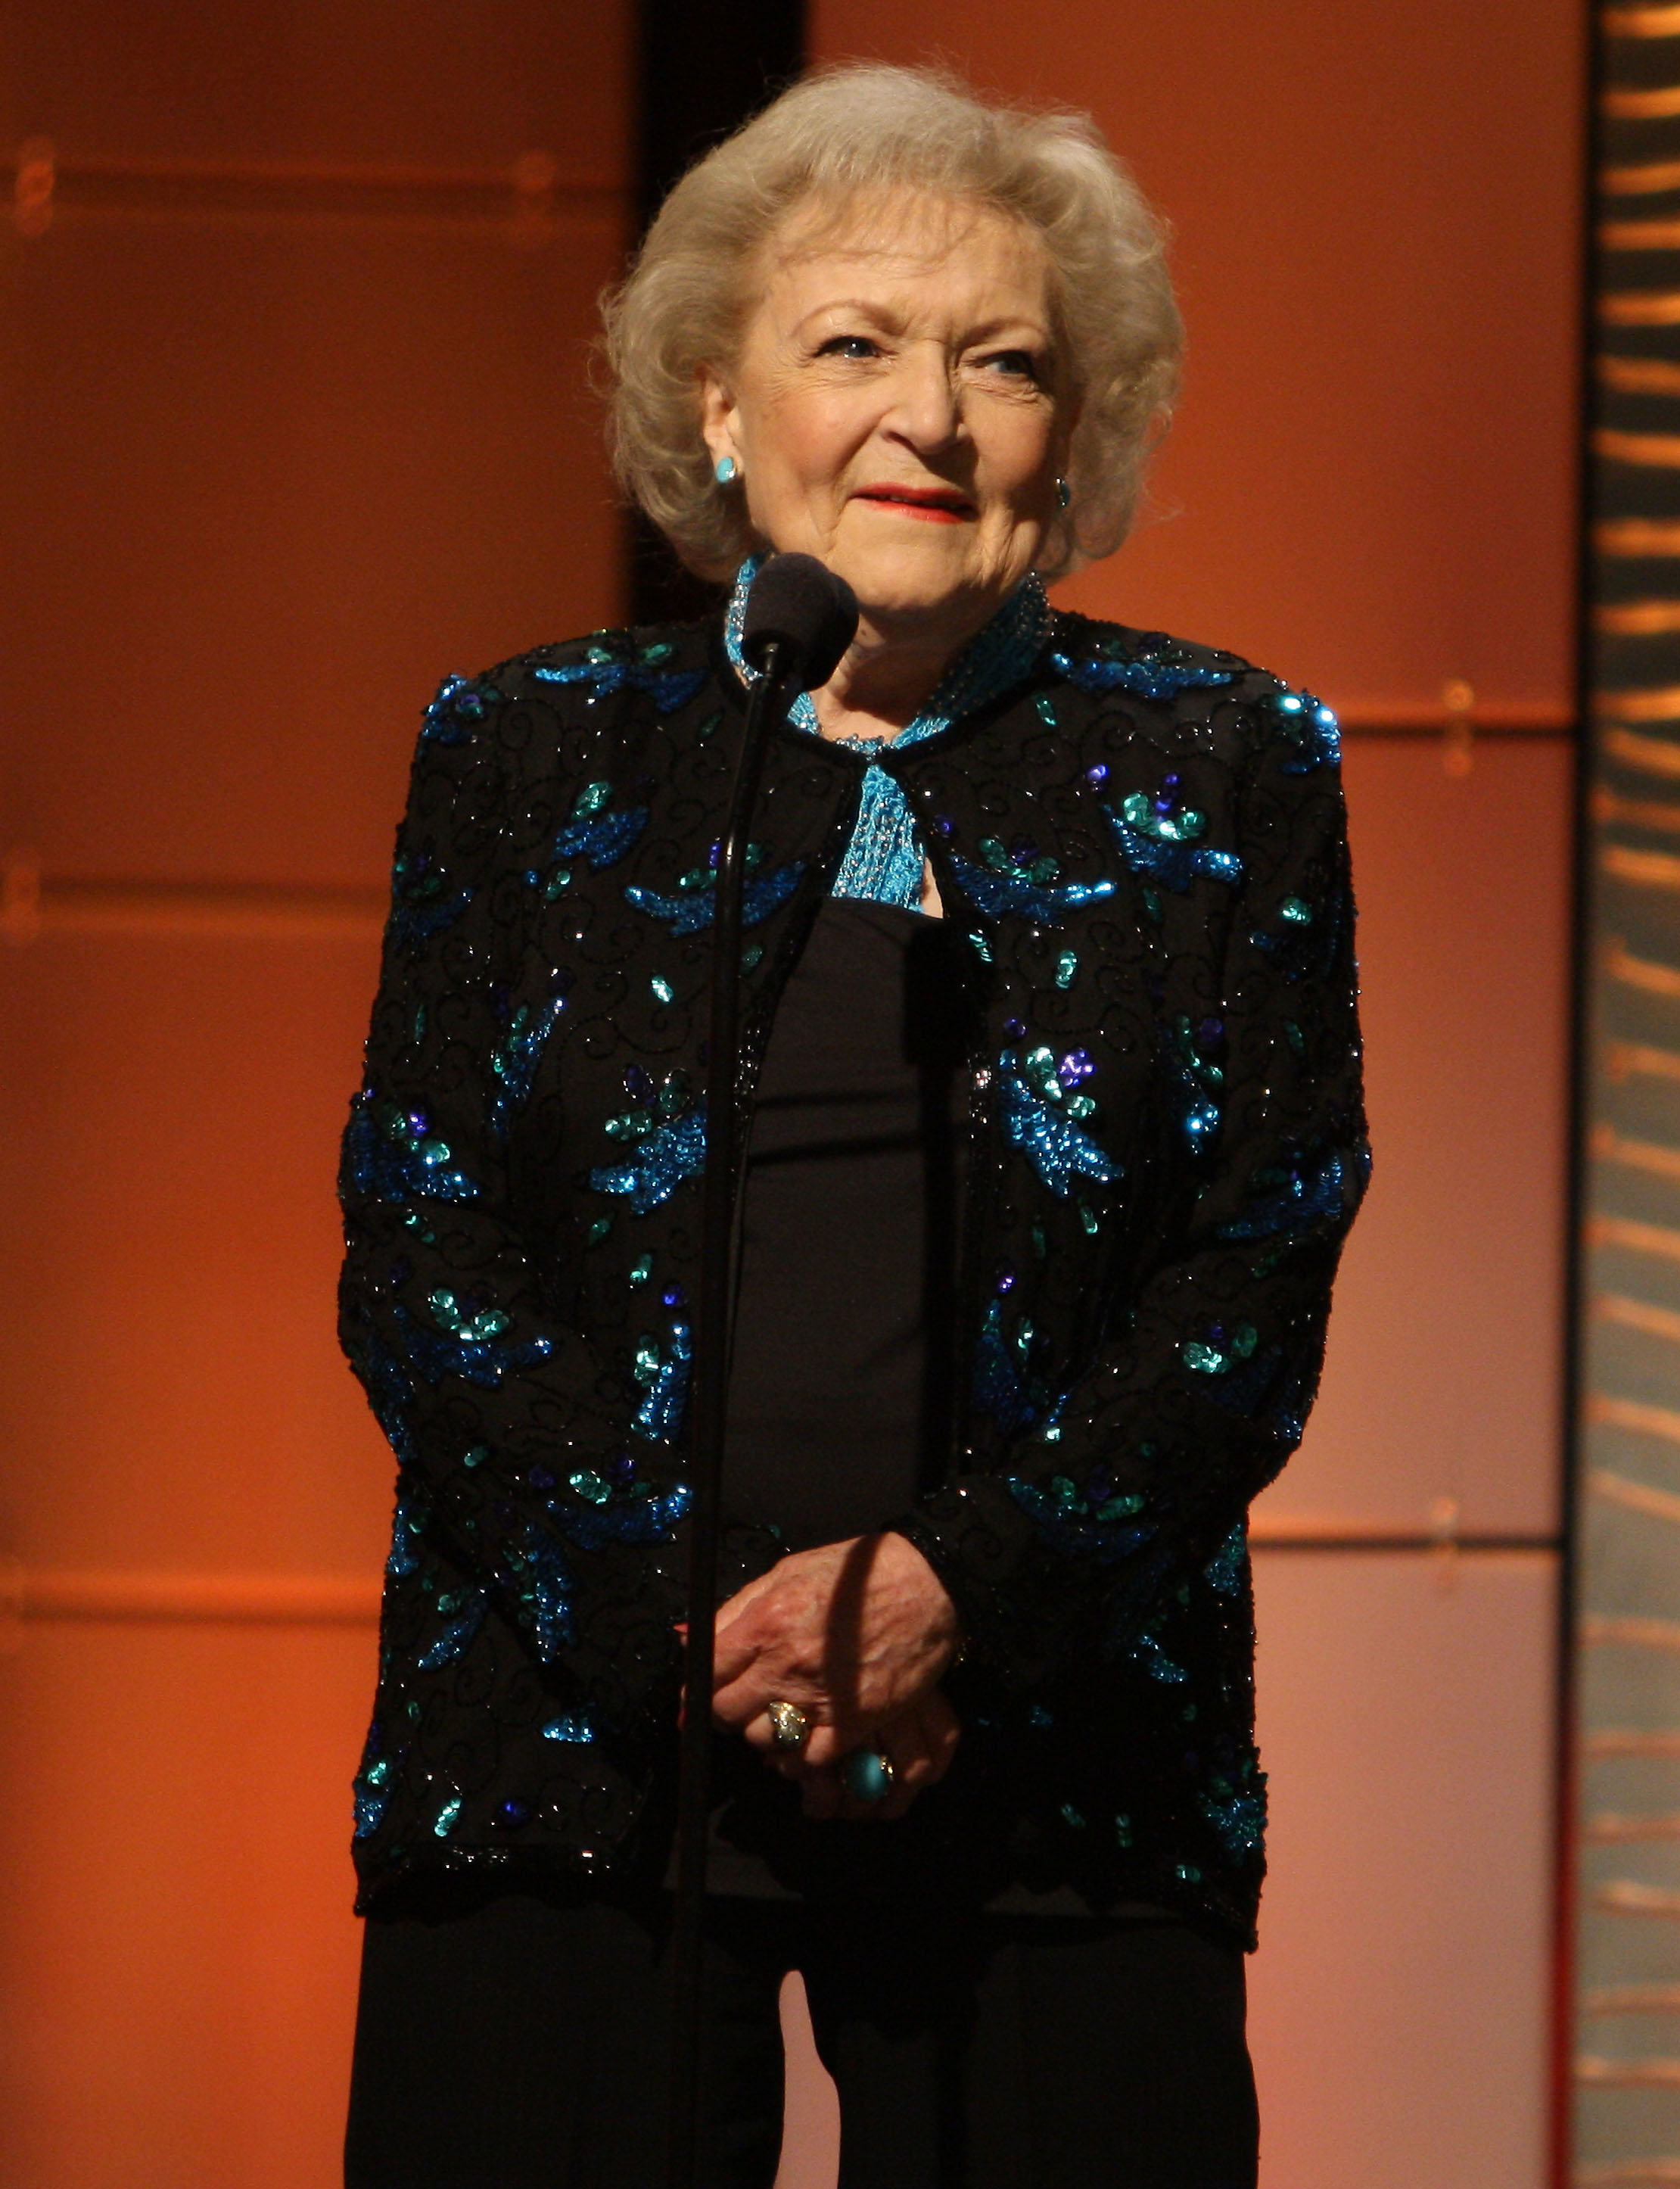 The 40th Annual Daytime Emmy Awards sponsored by CIROC Vodka held at The Beverly Hilton Hotel - Show                                    Featuring: Betty White                  Where: Beverly Hills, California, United States                  When: 16 Jun 2013                  Credit: FayesVision/WENN.com